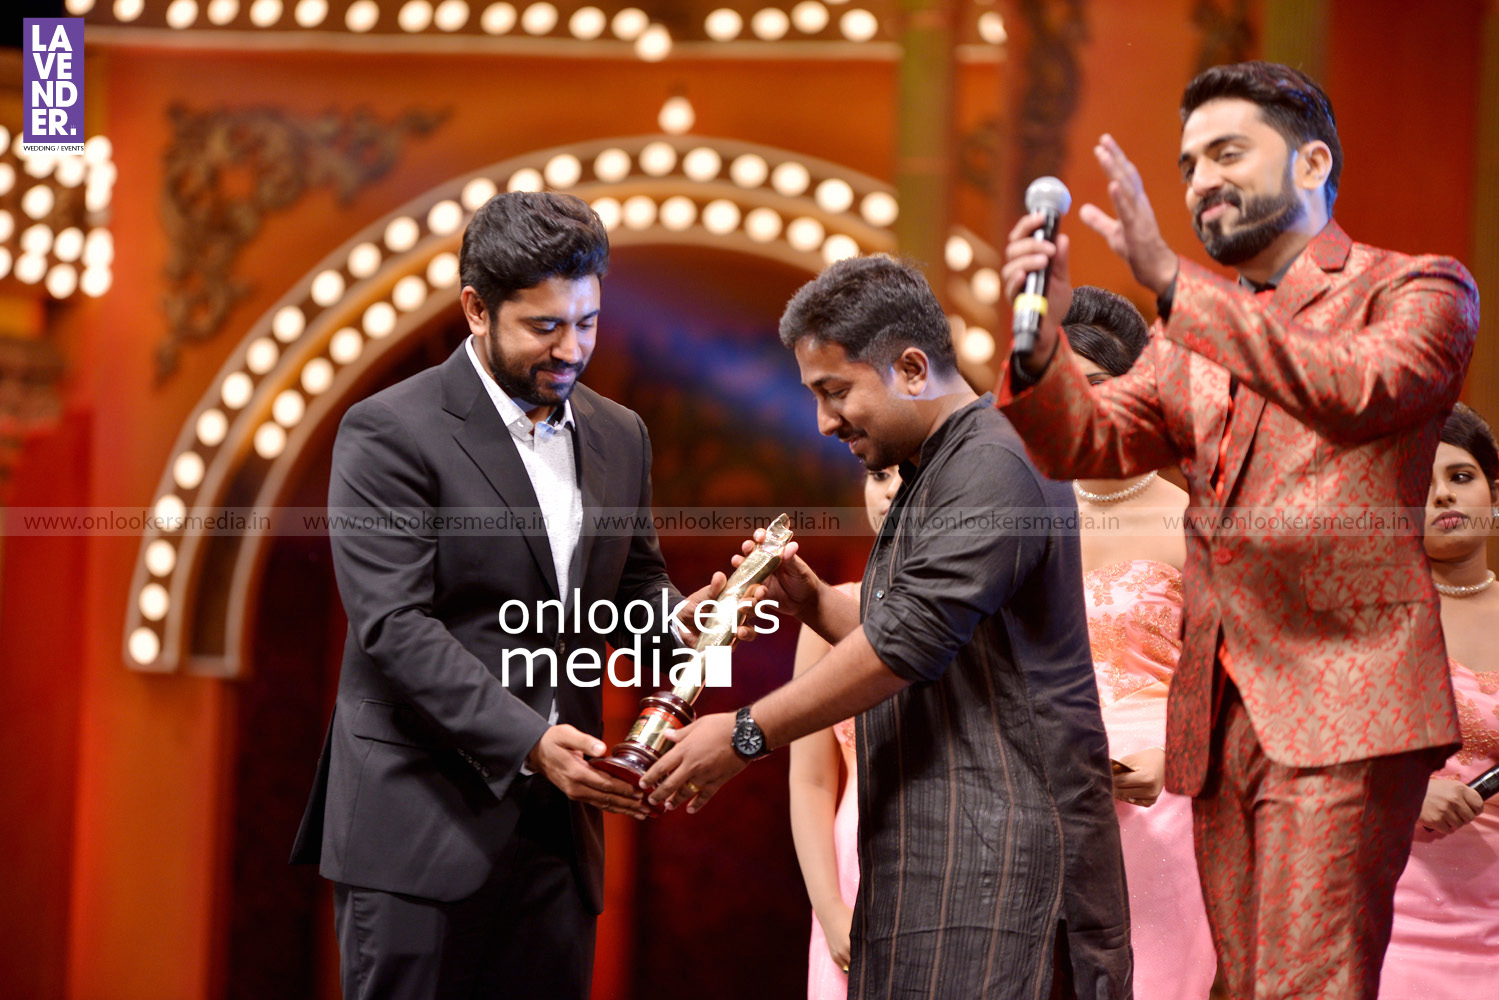 http://onlookersmedia.in/wp-content/uploads/2016/02/Nivin-Pauly-at-Asianet-Film-Award-2016-30.jpg